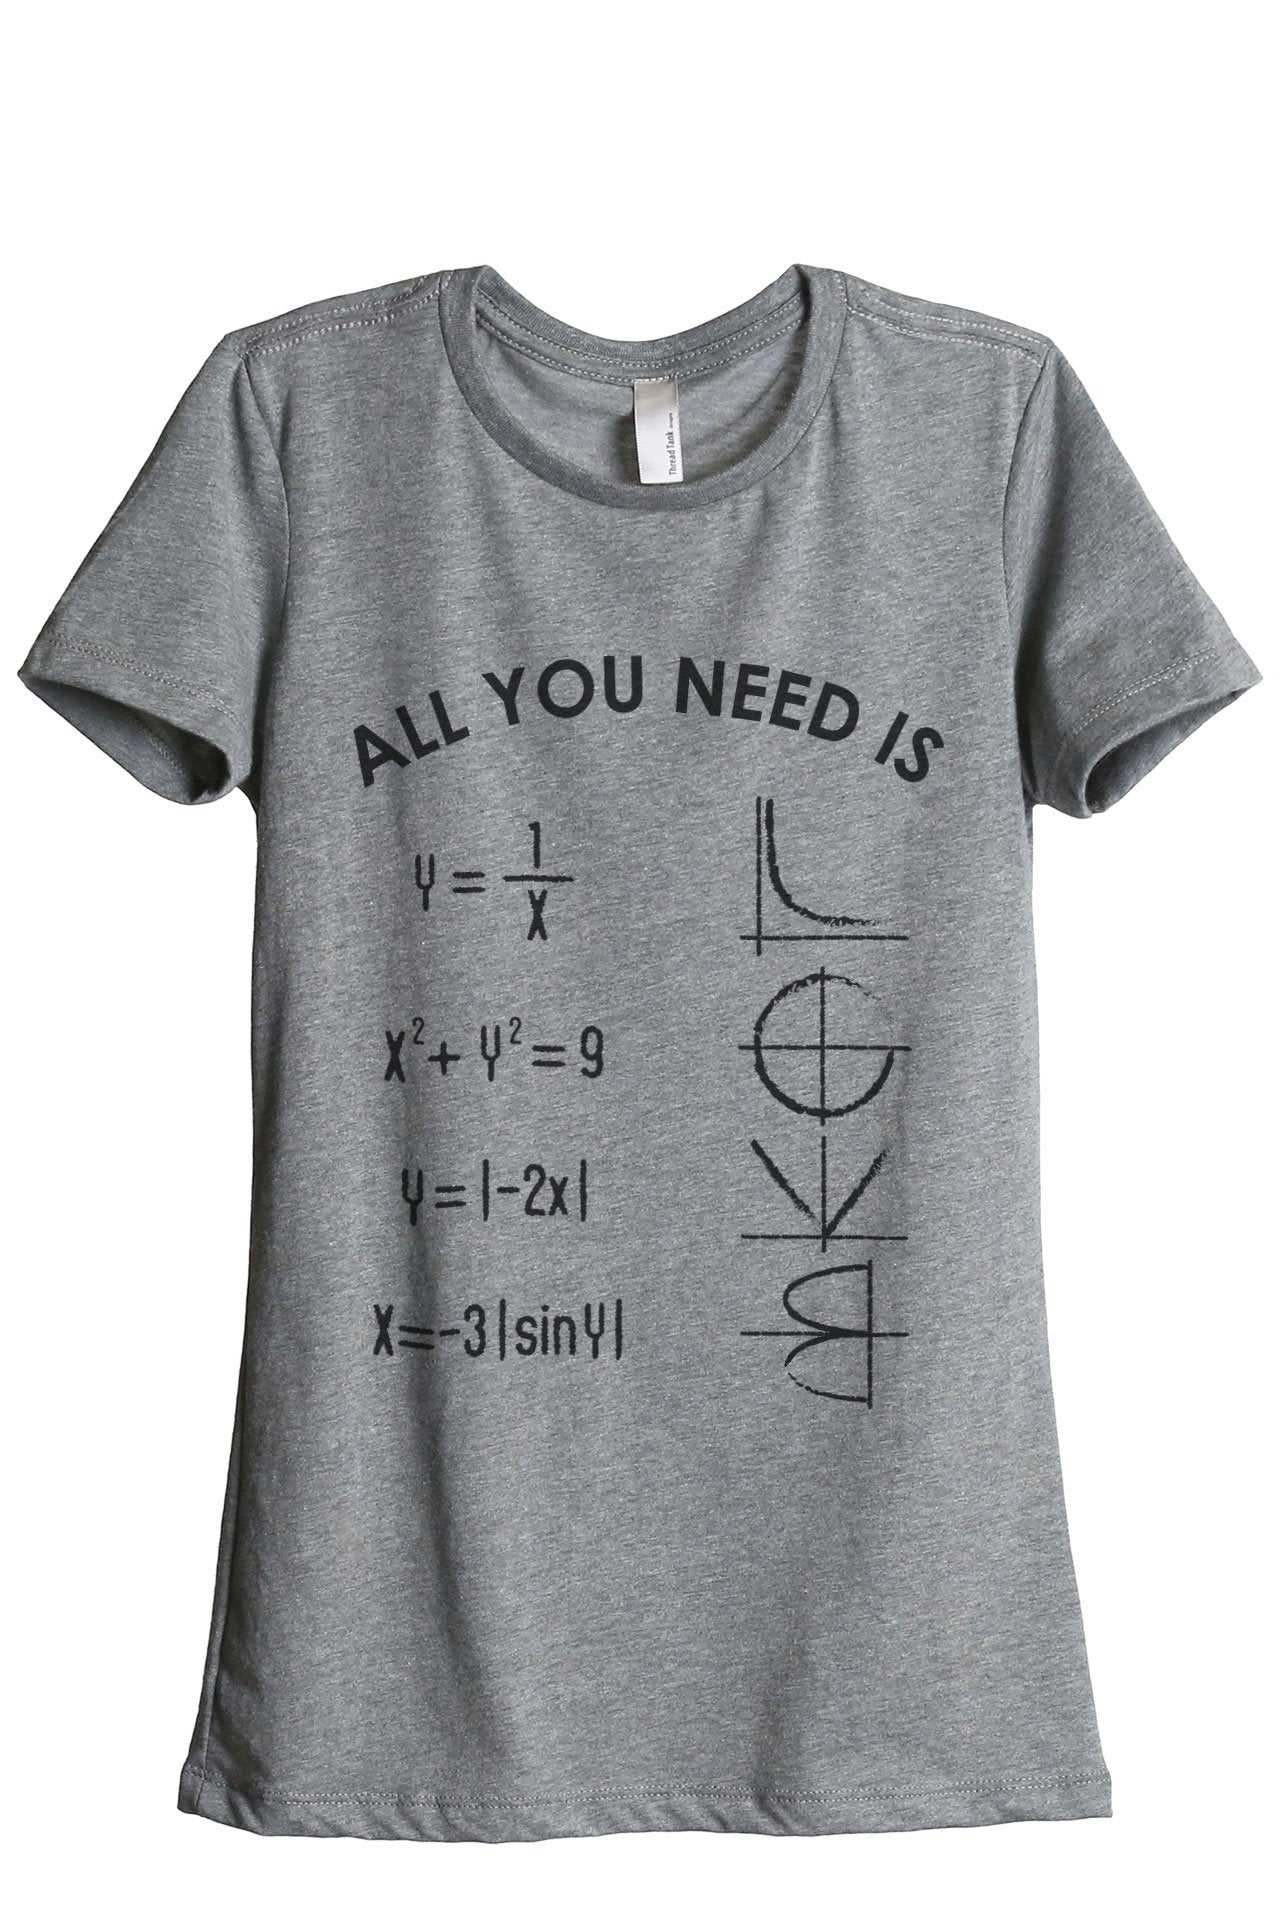 All You Need Is LOVE (Math) - Thread Tank | Stories You Can Wear | T-Shirts, Tank Tops and Sweatshirts